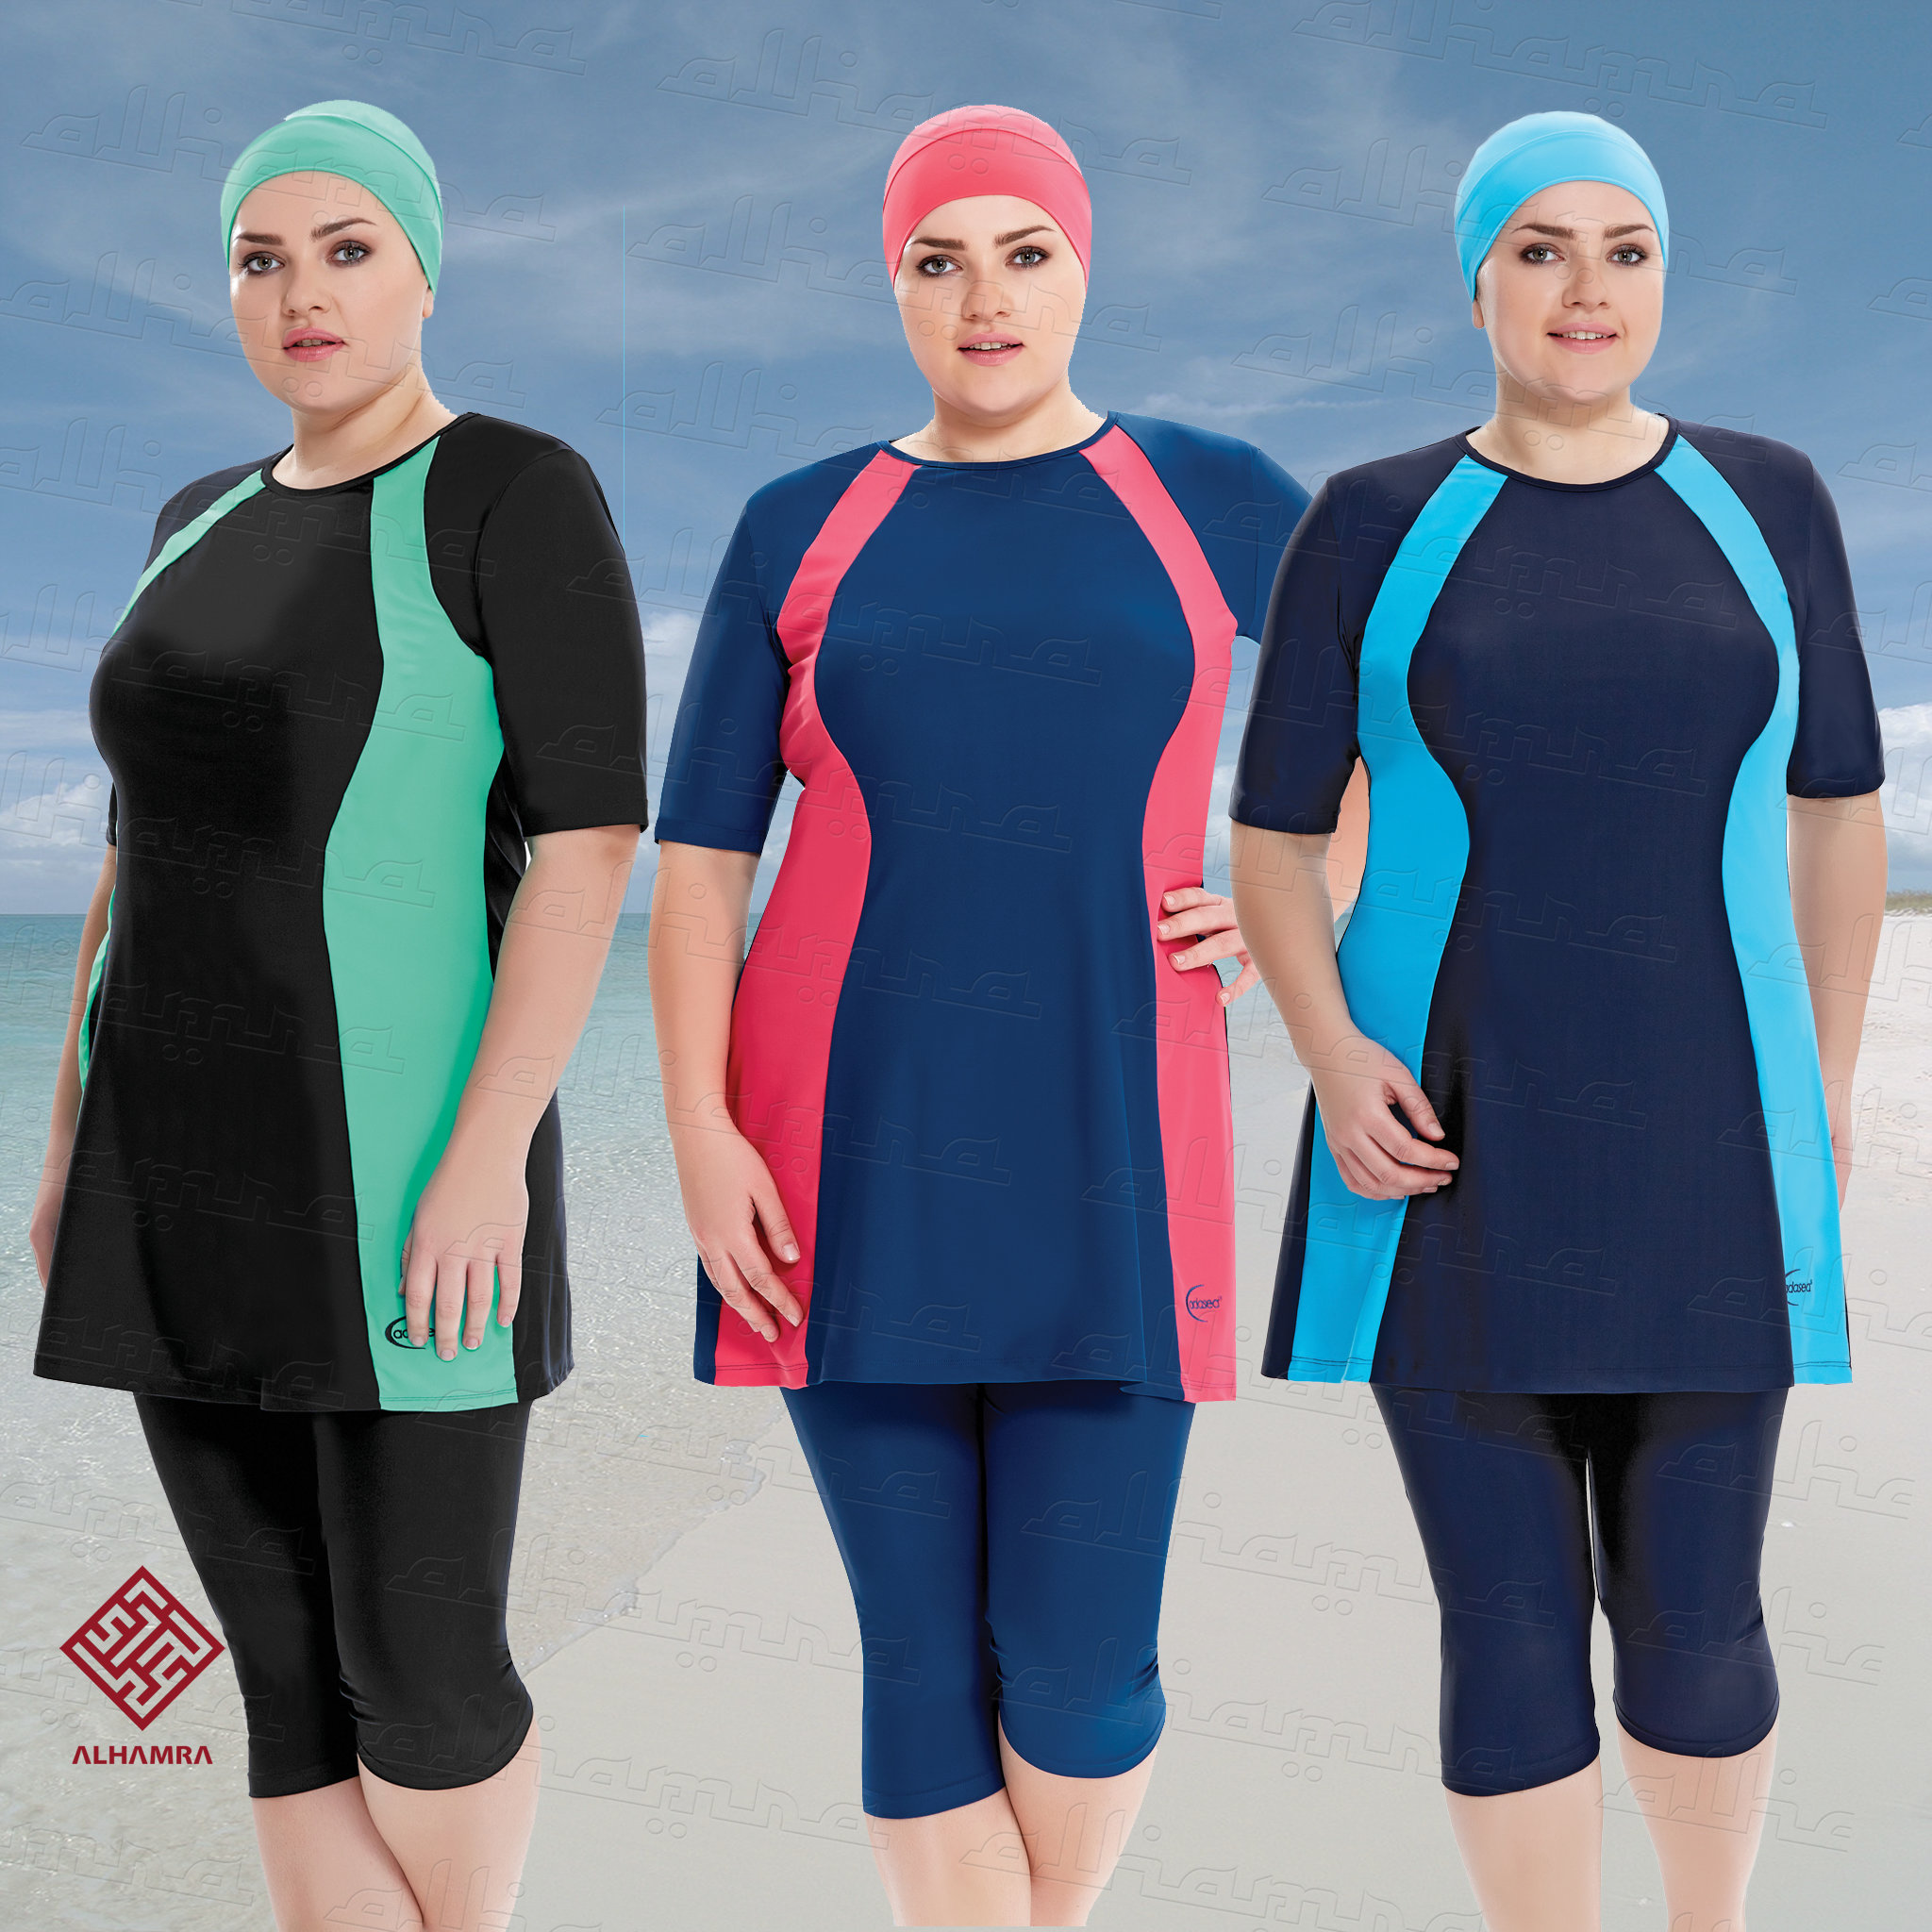 bead2c0834 AlHamra Semi Cover Marina Burkini Modest Women Swimwear Sportswear ...